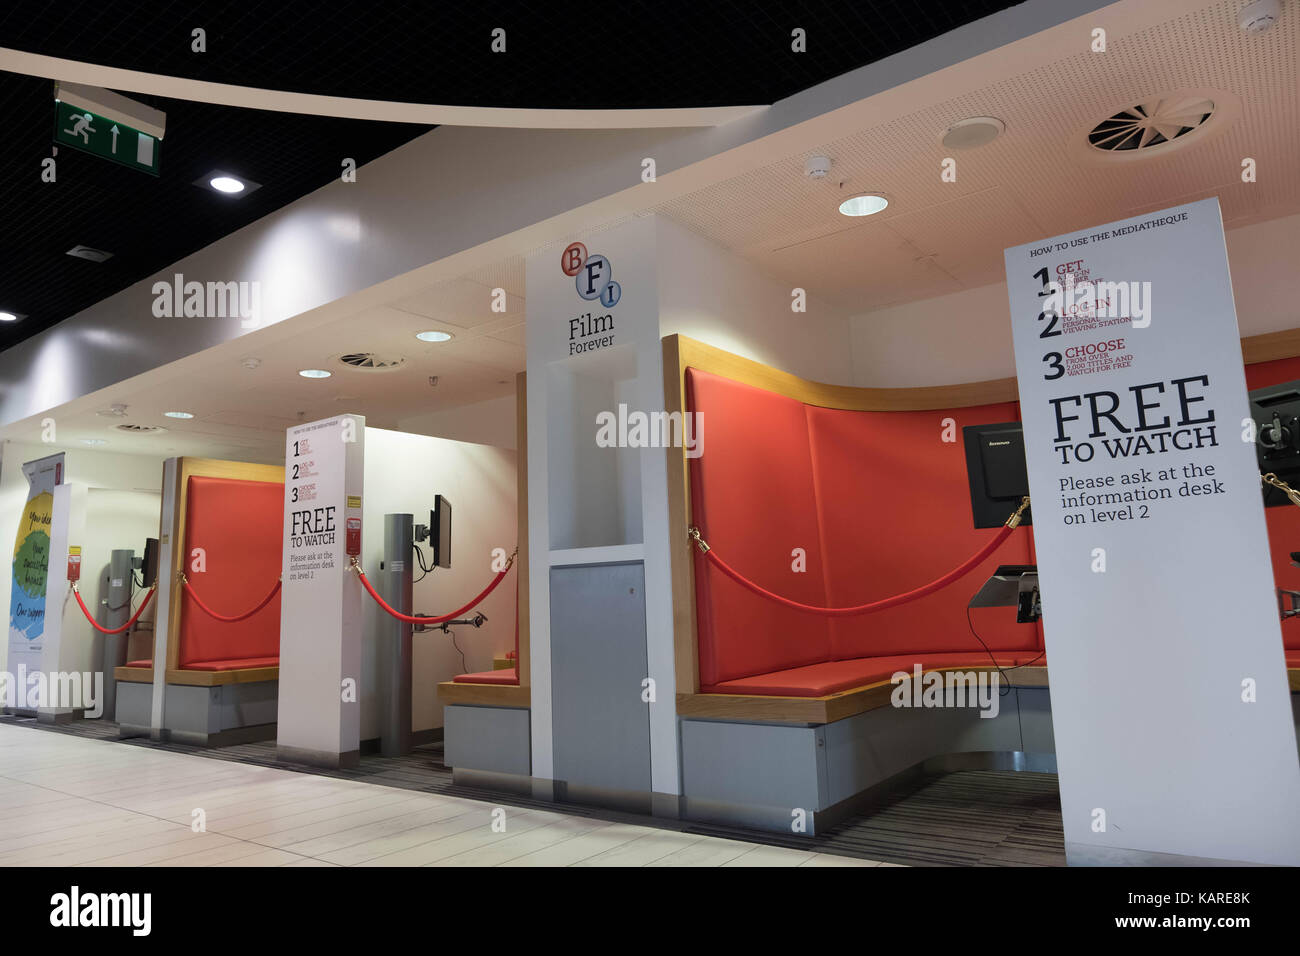 BFI Film booths in Birmingham Library - Stock Image